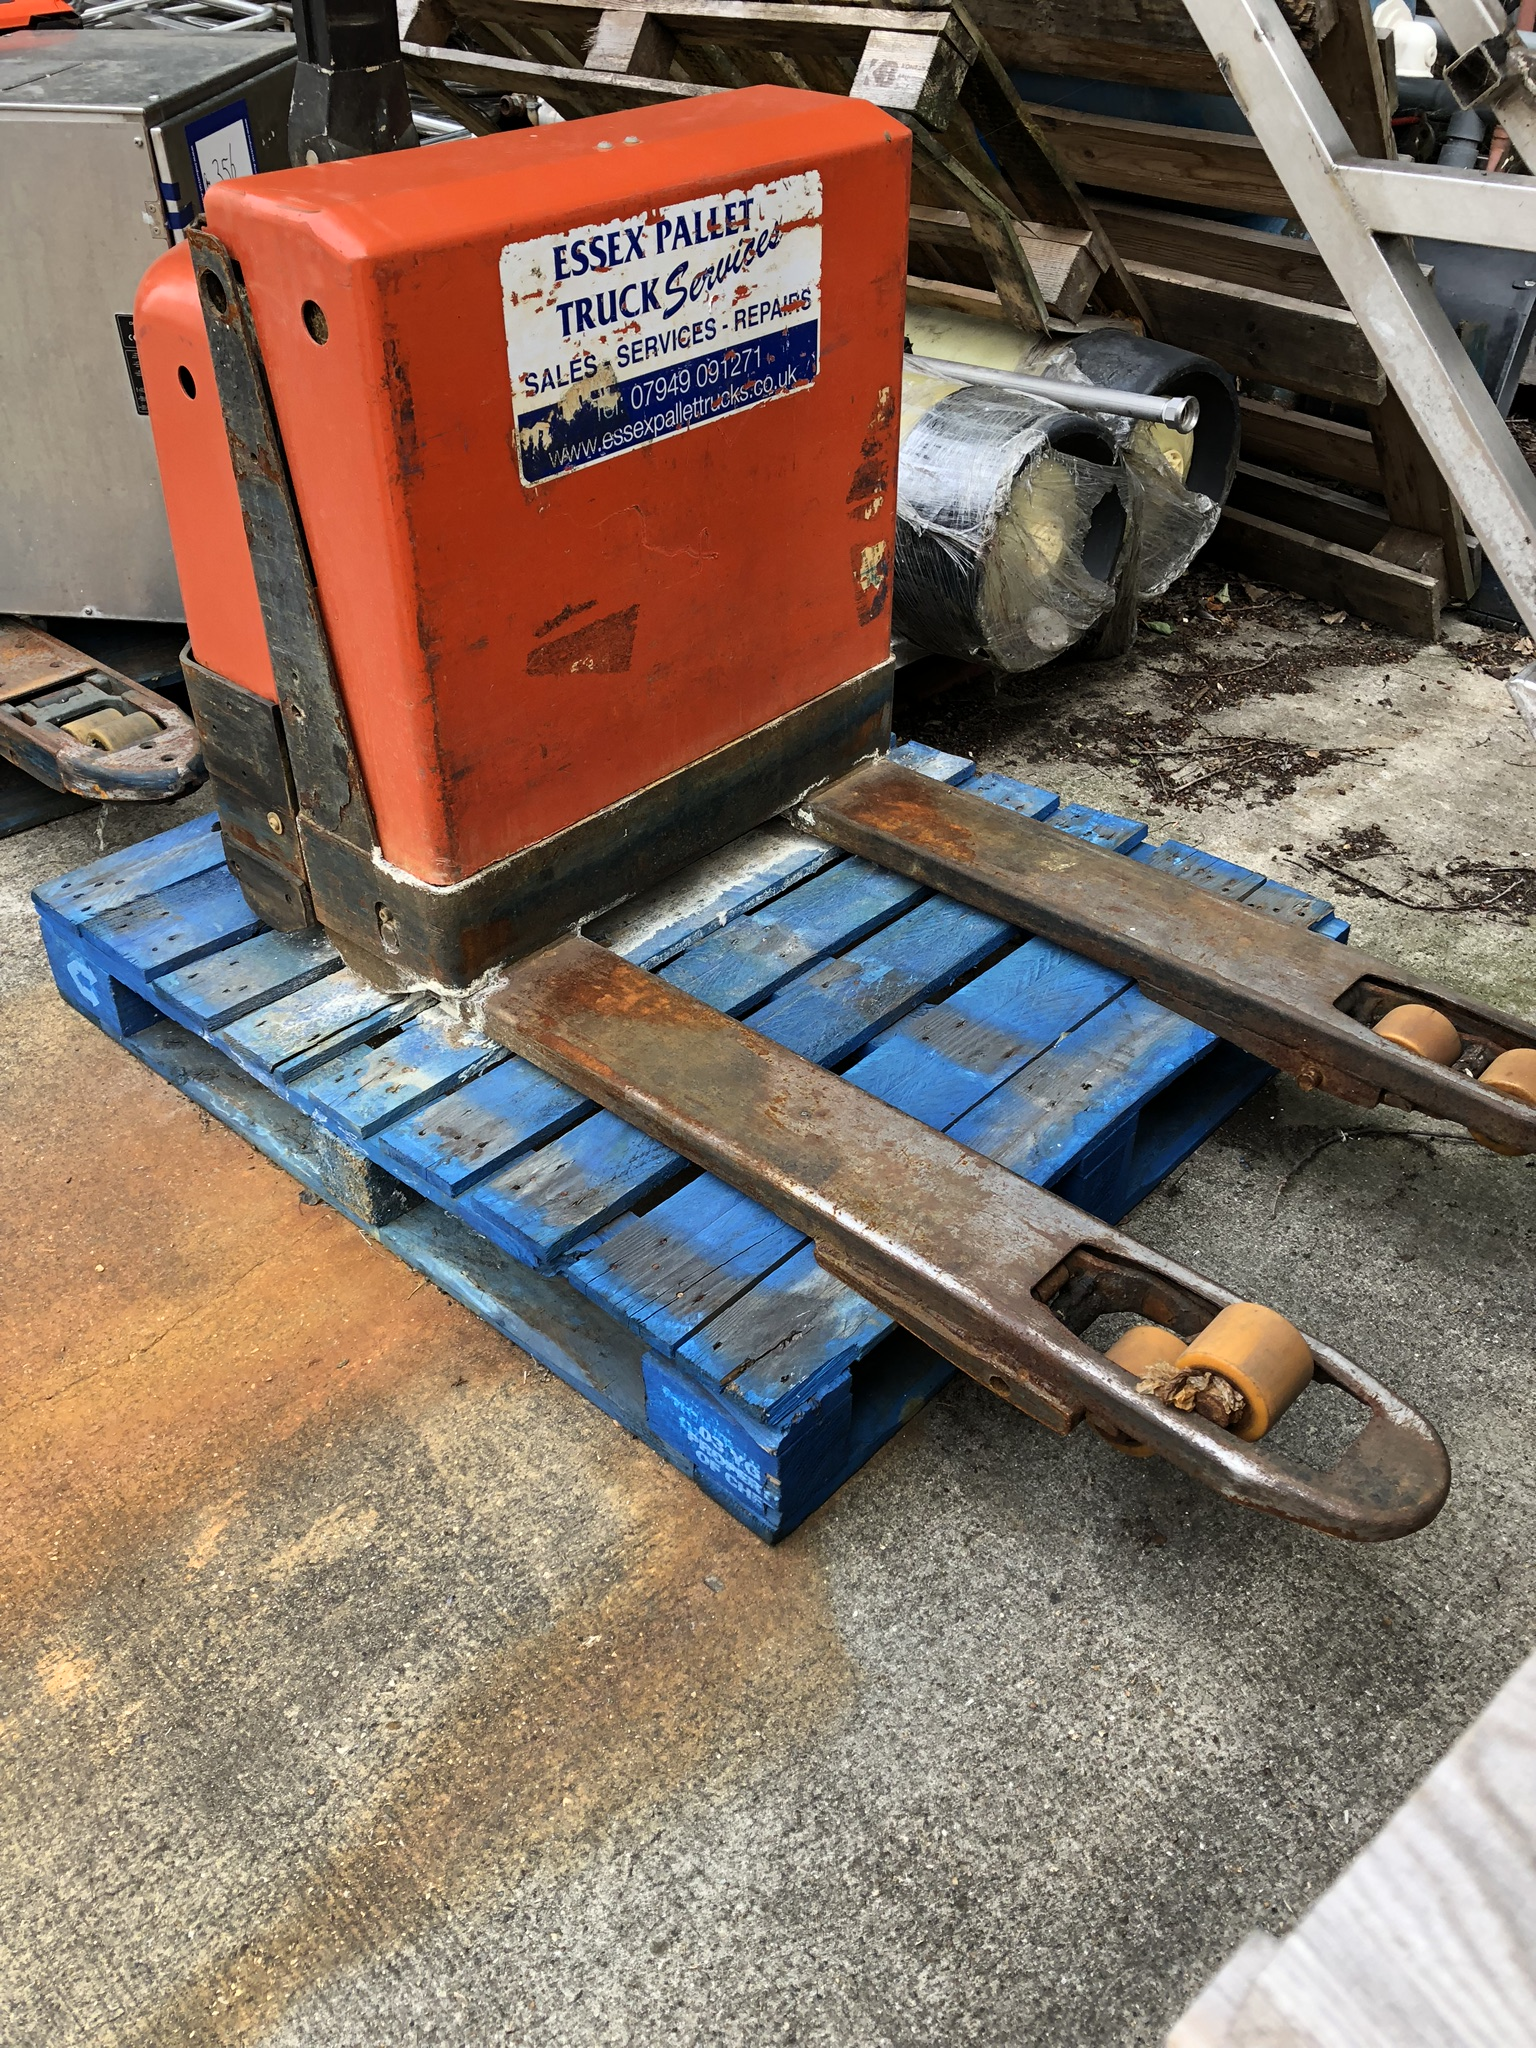 BT LWE180 1800kg Electric Pallet Truck, serial no. 987702, year of manufacture 2007, lift out charge - Image 2 of 3